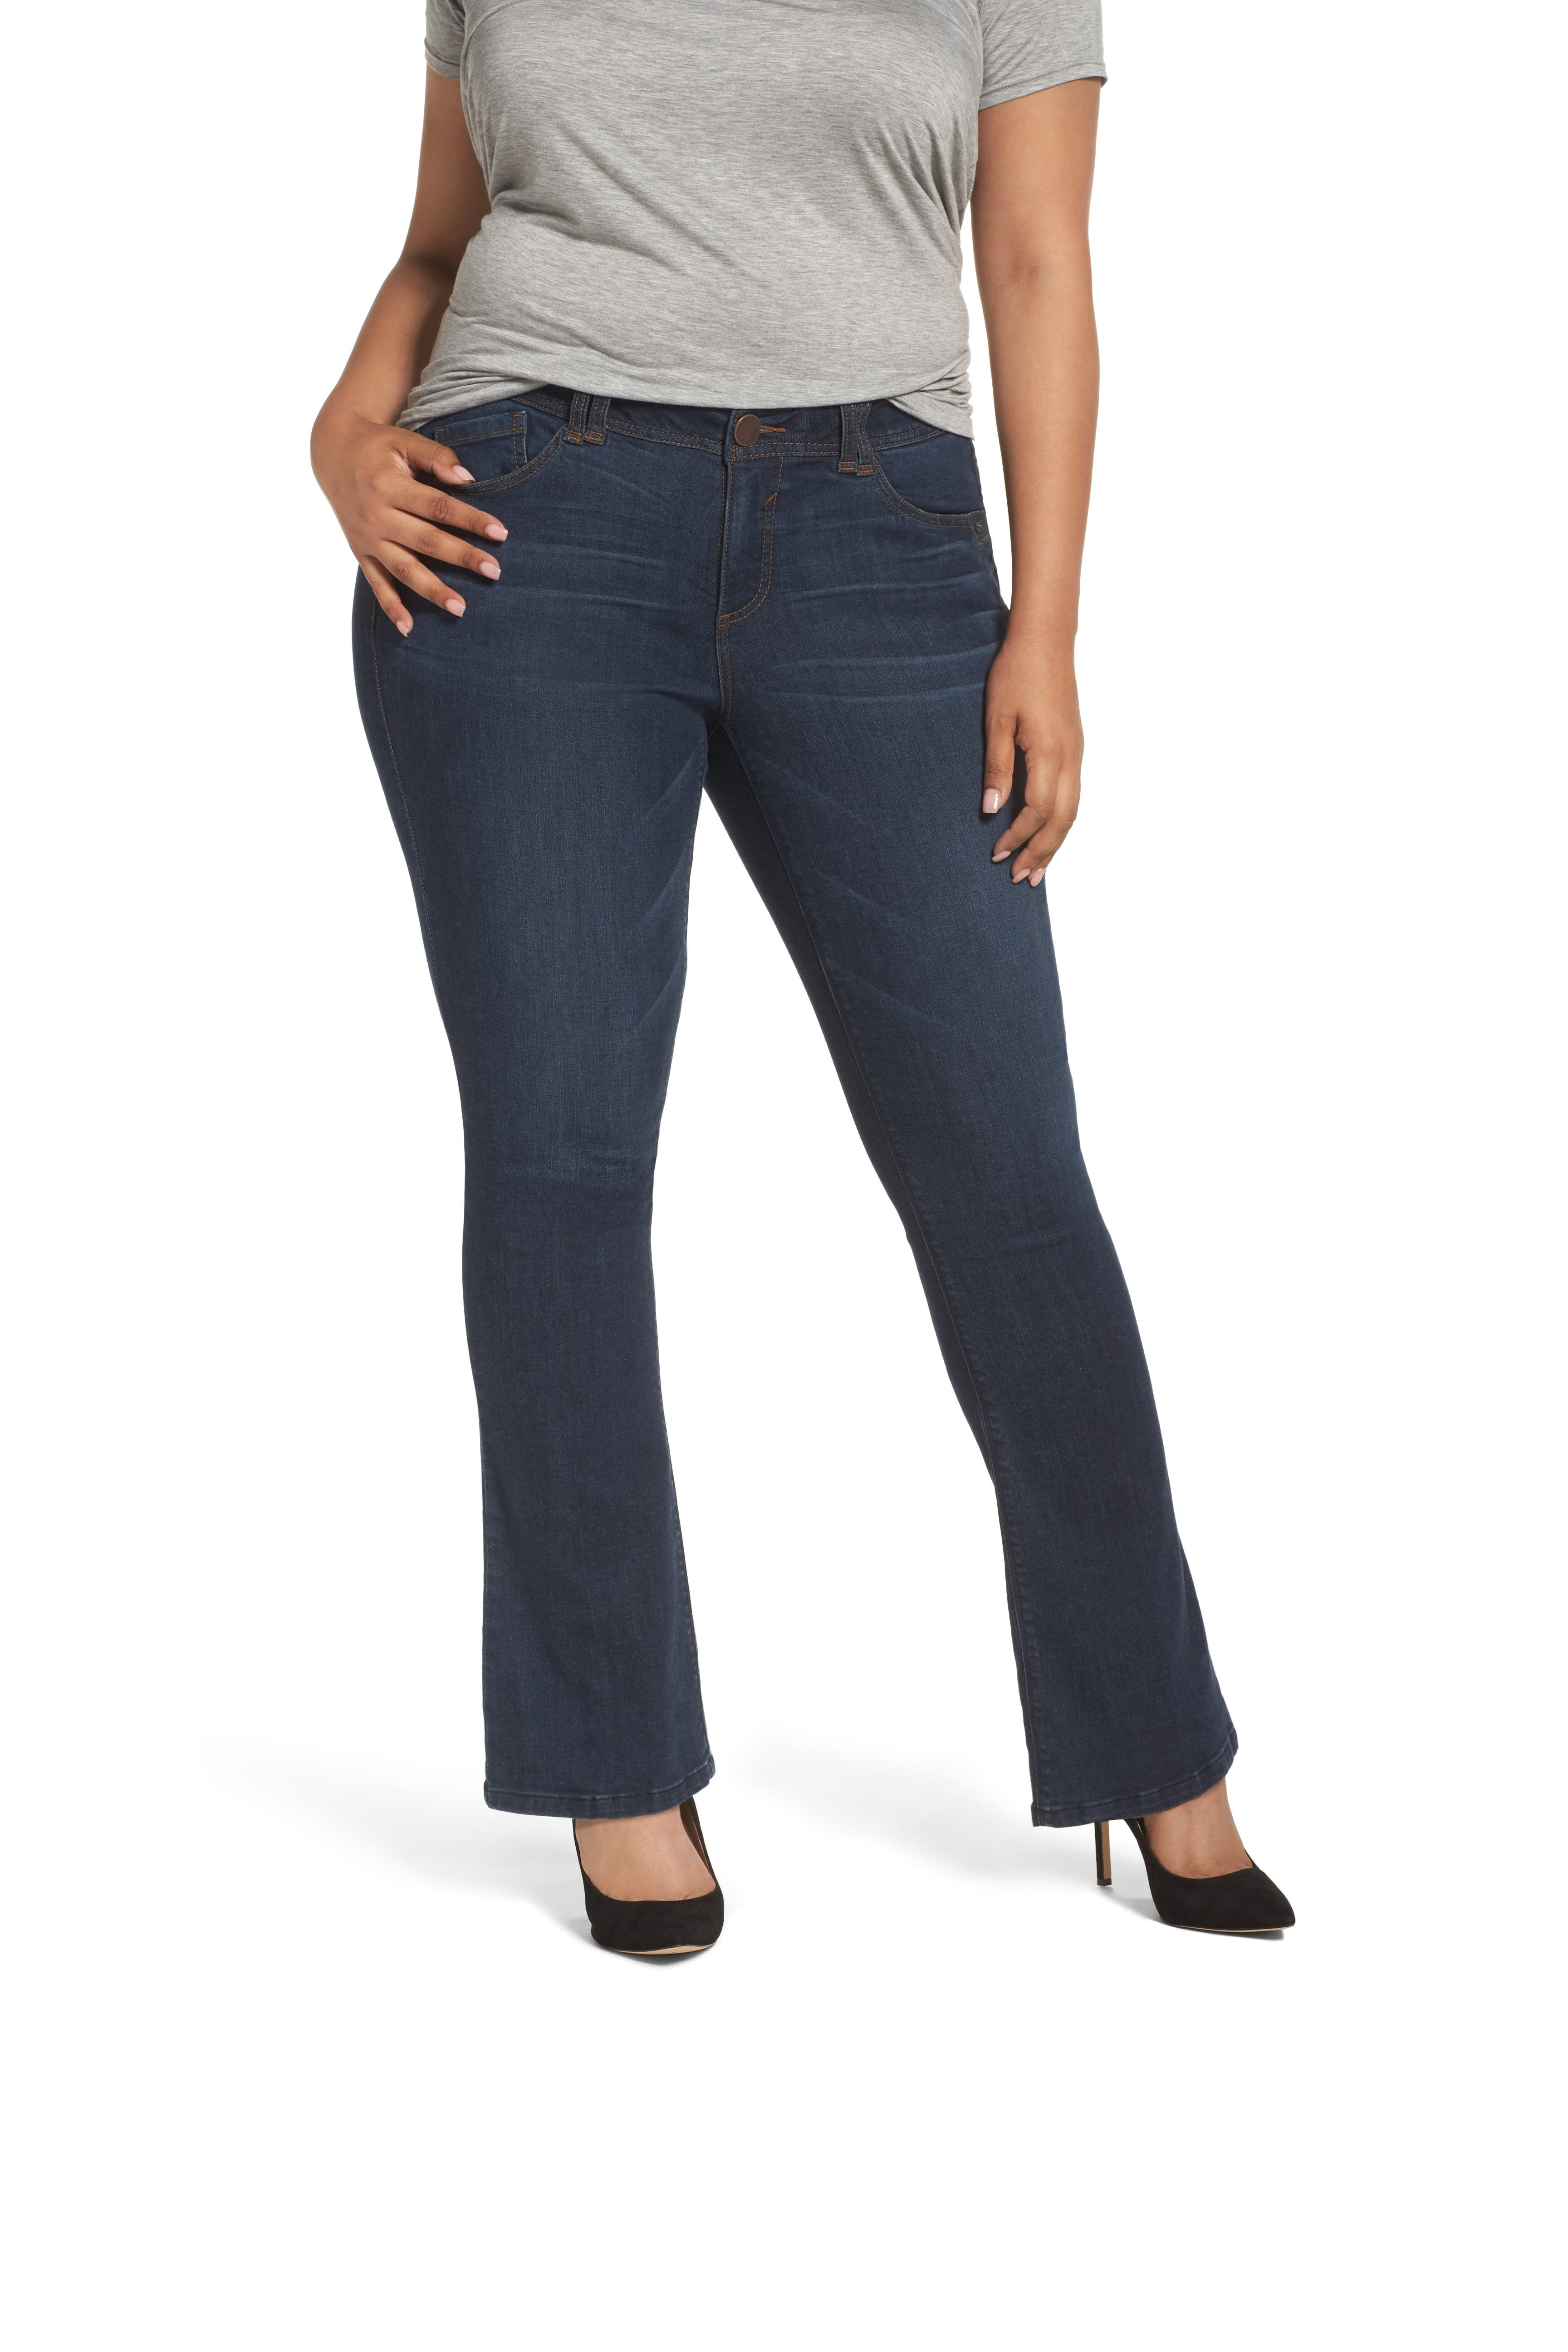 Ab-solution Itty Bitty Bootcut Jeans,                             Main thumbnail 1, color,                             420